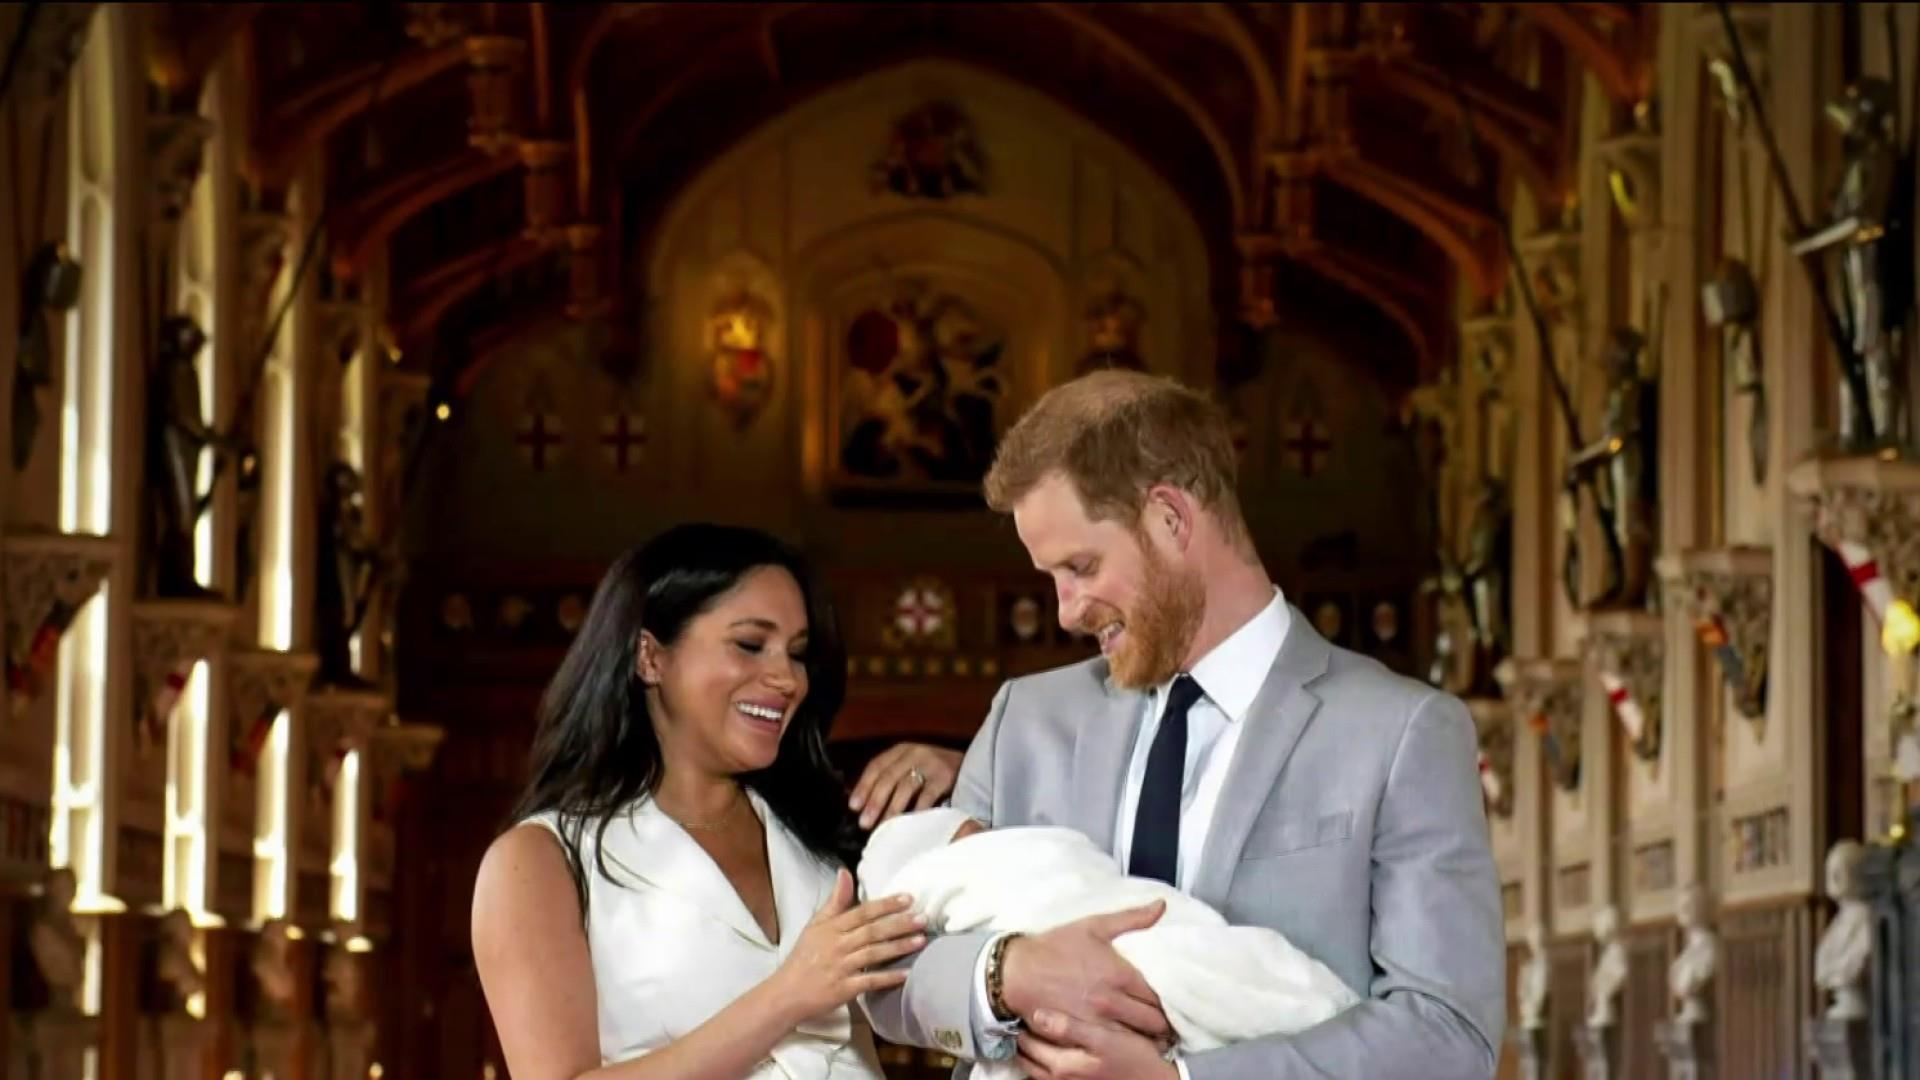 Meghan Markle and Prince Harry announce break from royal duties after media scrutiny